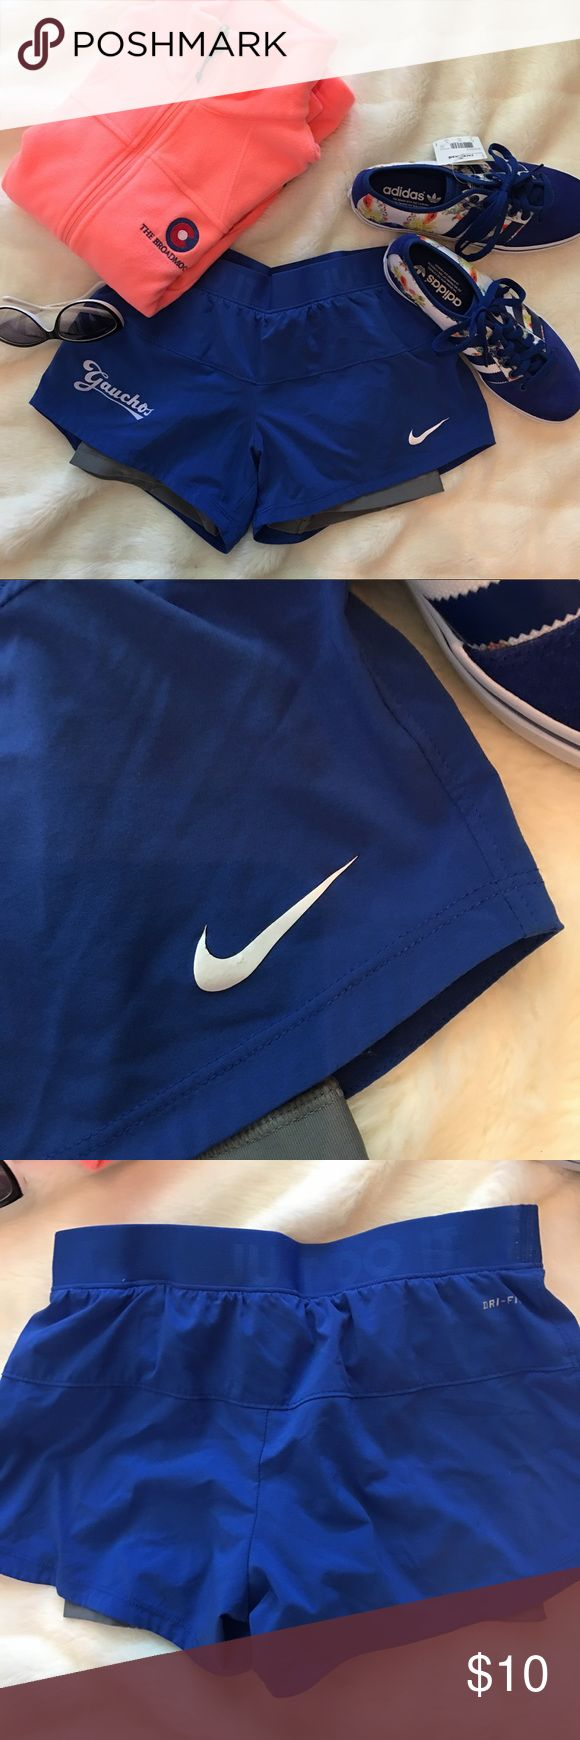 Nike Athletic Shorts Royal blue athletic shorts with attached spandex shorts inside. Adult size small. Nike Shorts